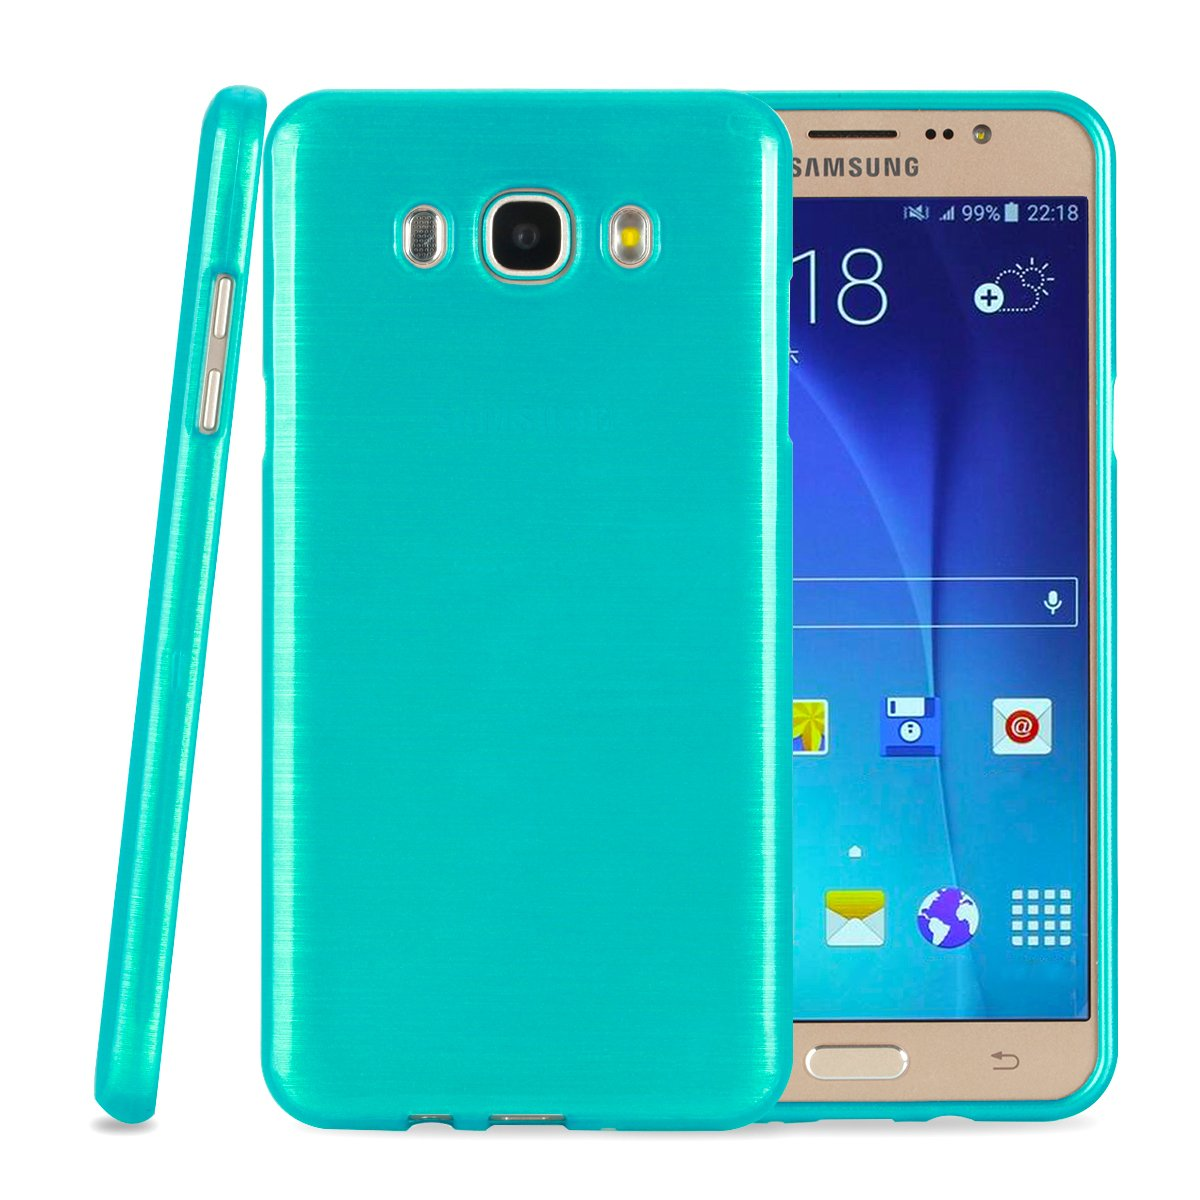 Funda Carcasa Gel para Galaxy J7 (2016), 11:11 Accessories ...